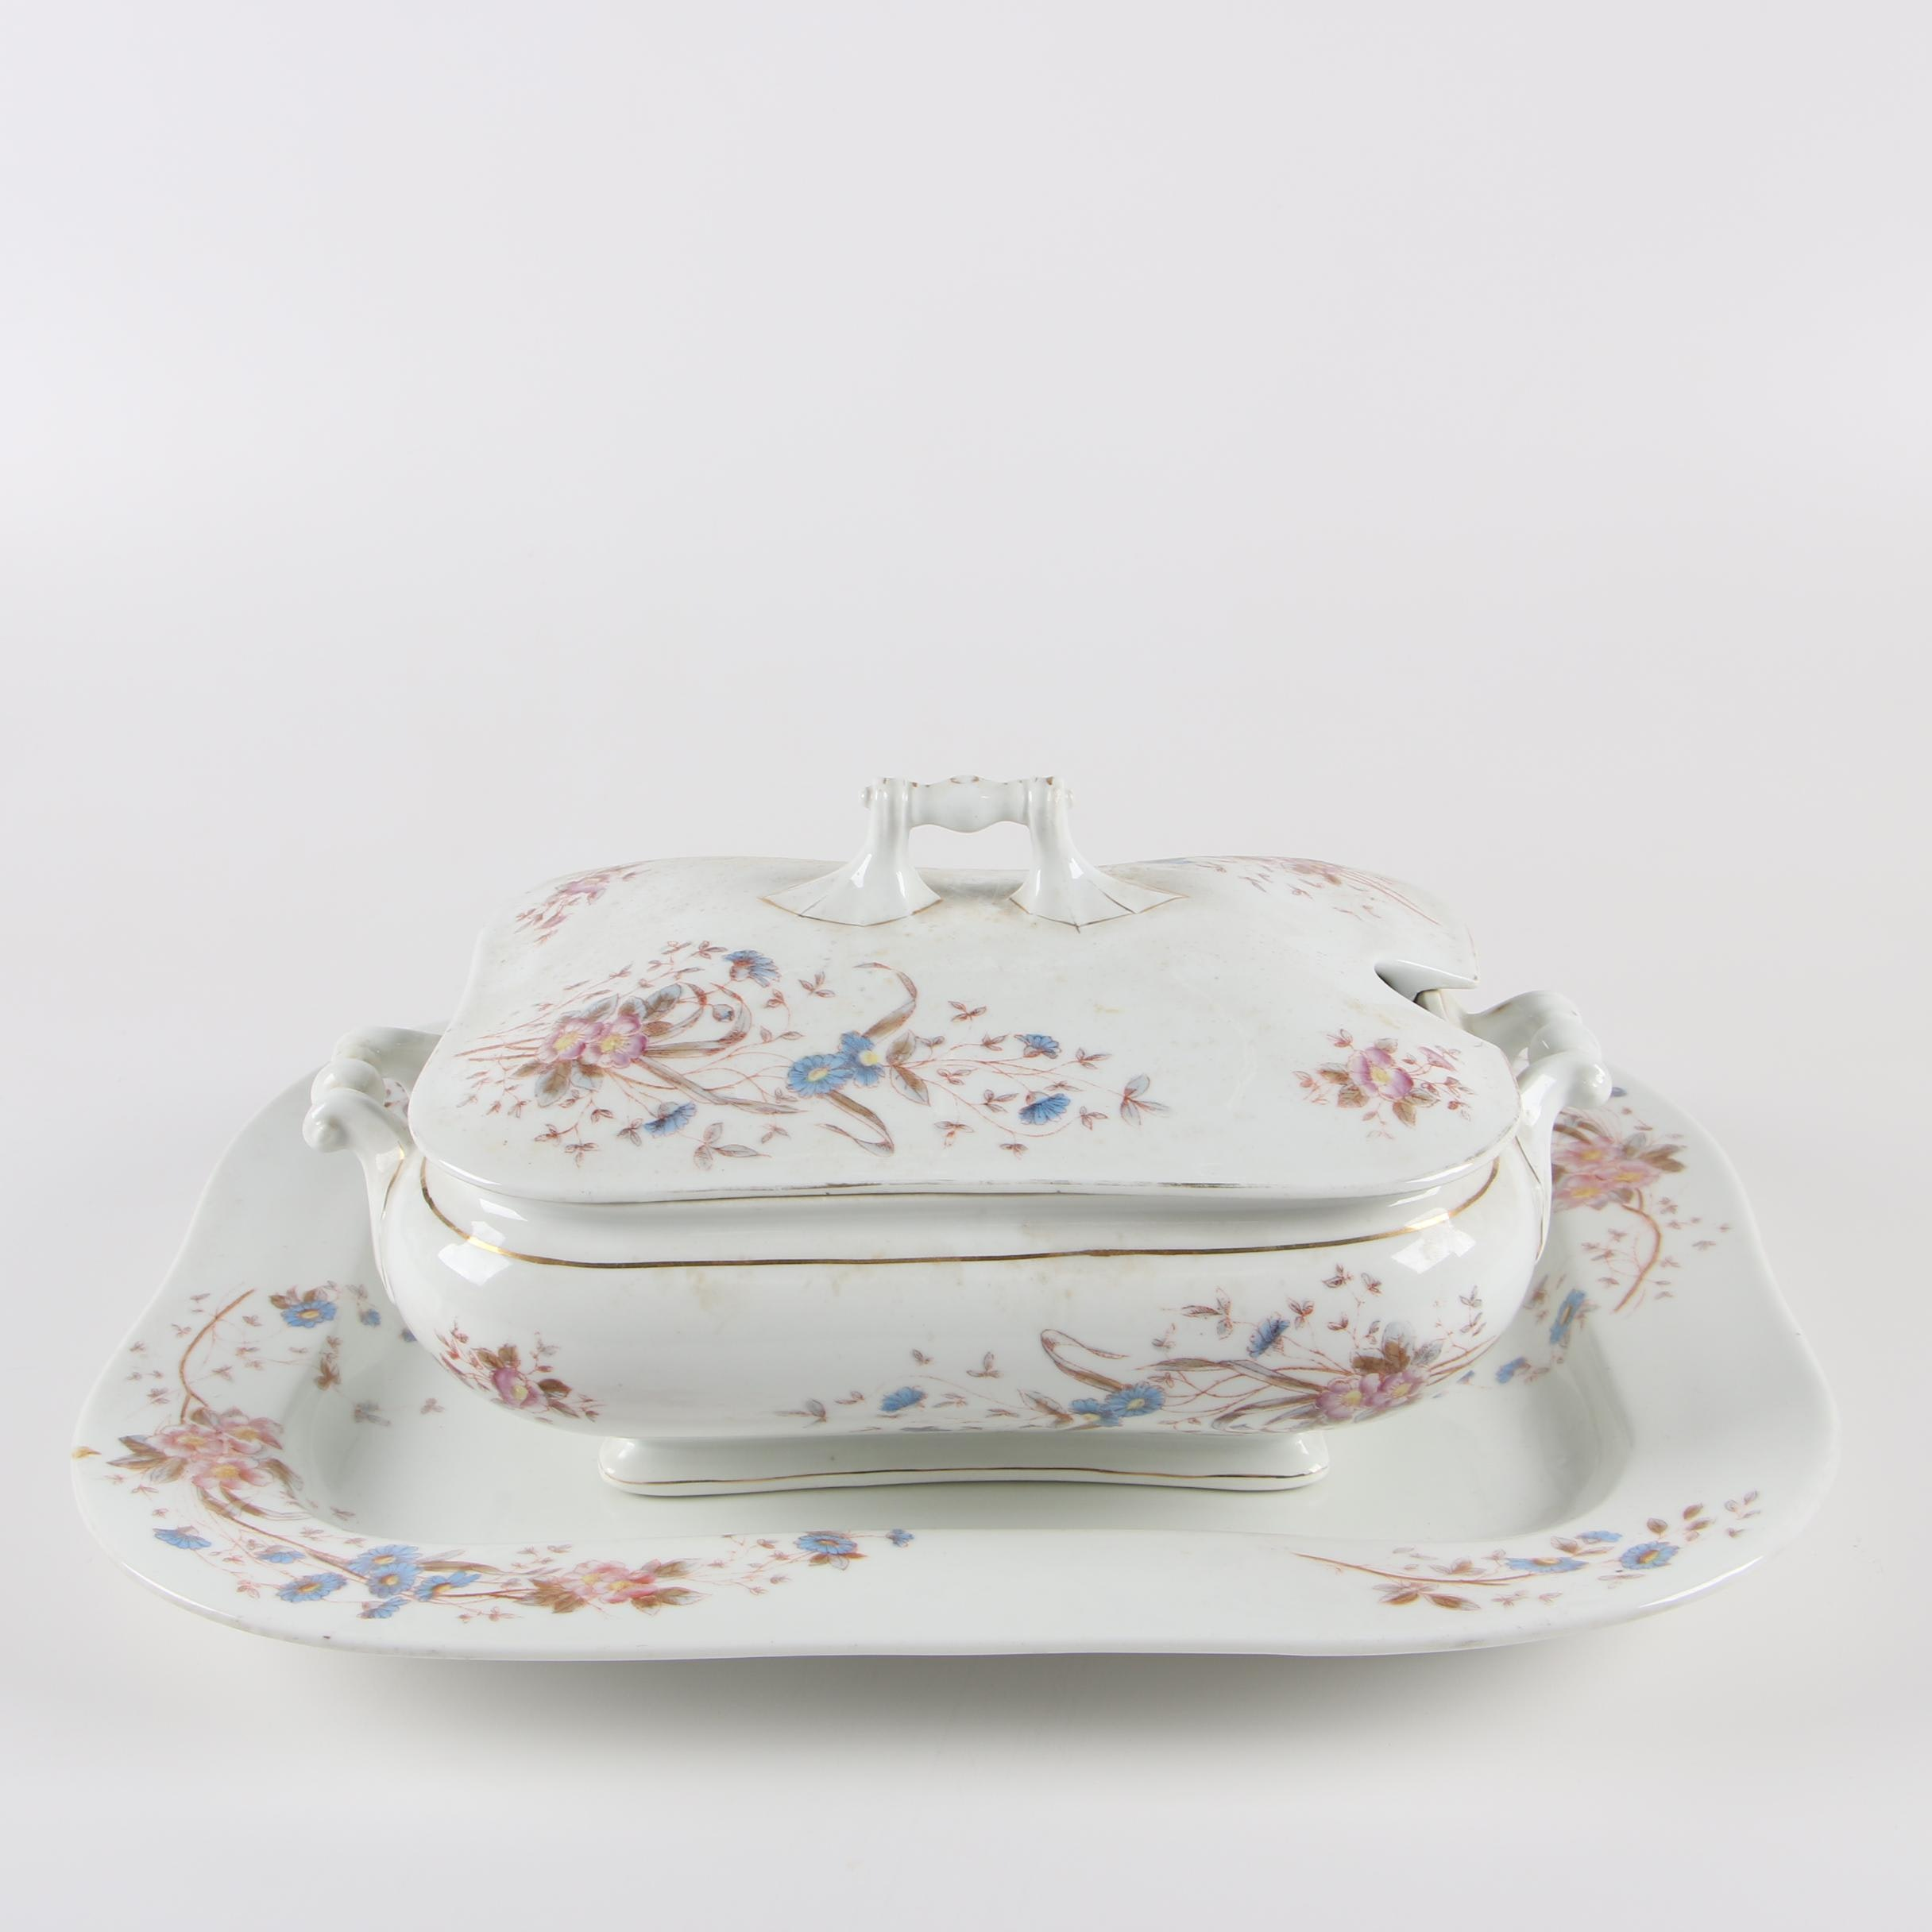 Antique Marx & Gutherz Carlsbad Porcelain Tureen and Under Tray c. 1891-98